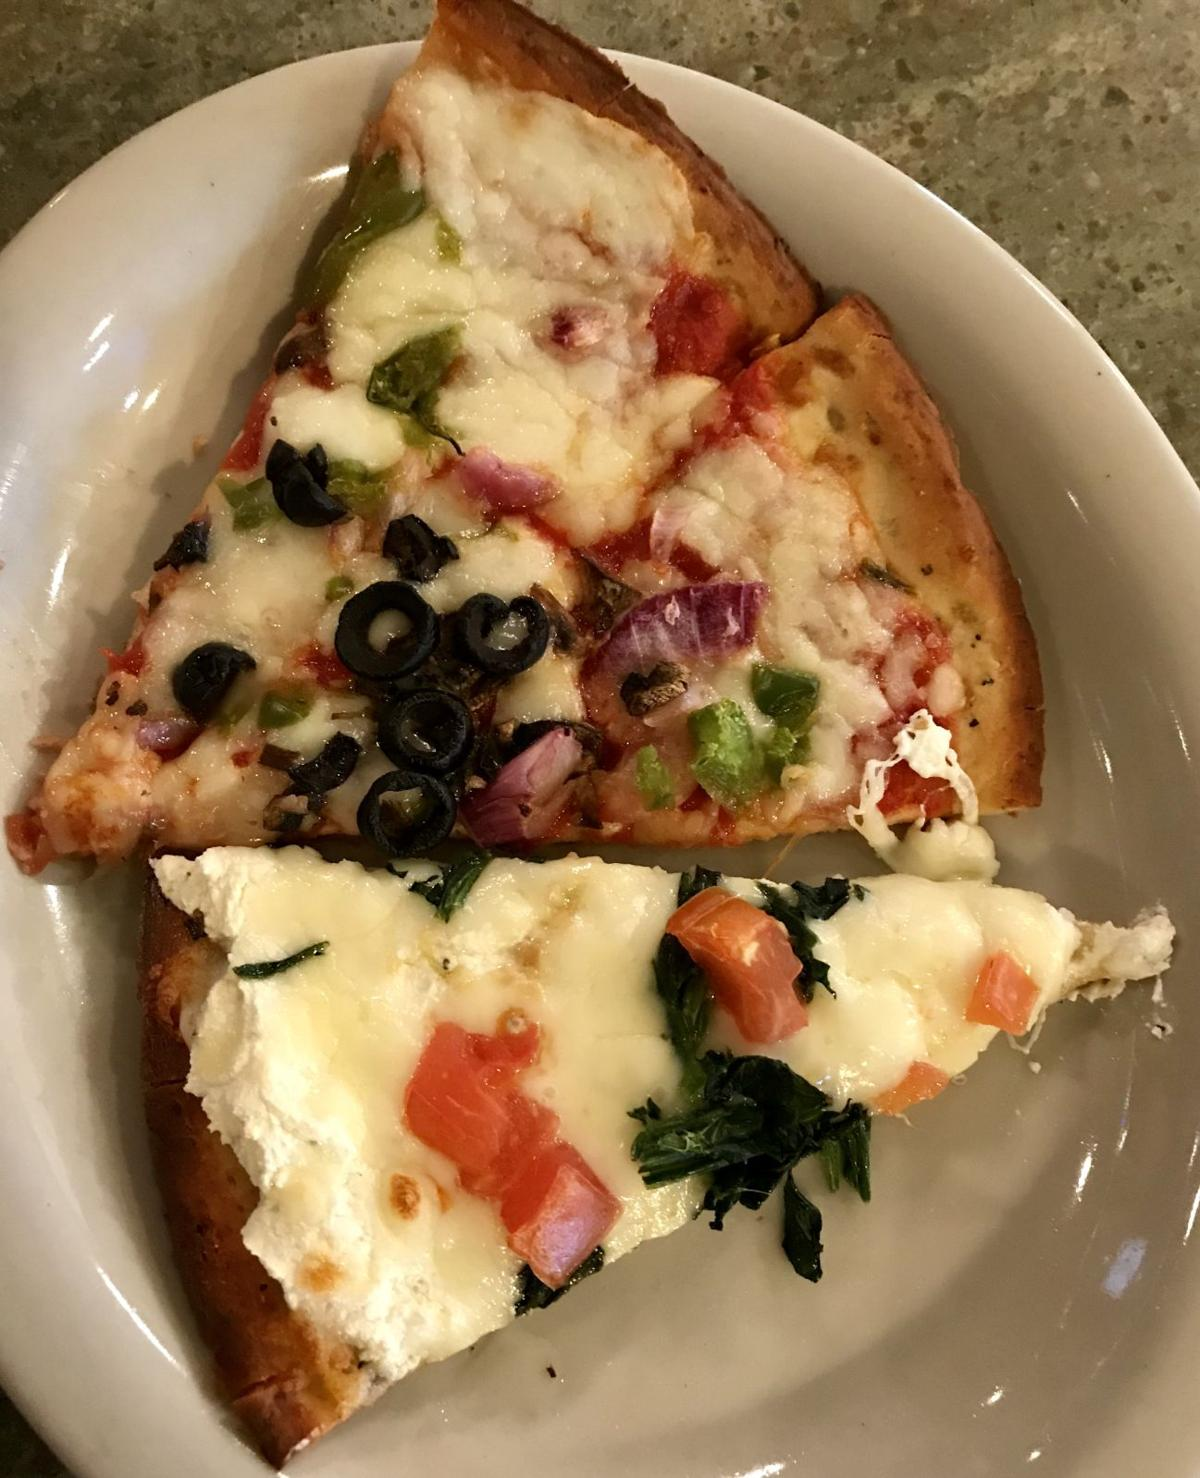 Cauliflower crust: trendy for pizza, but is it healthy